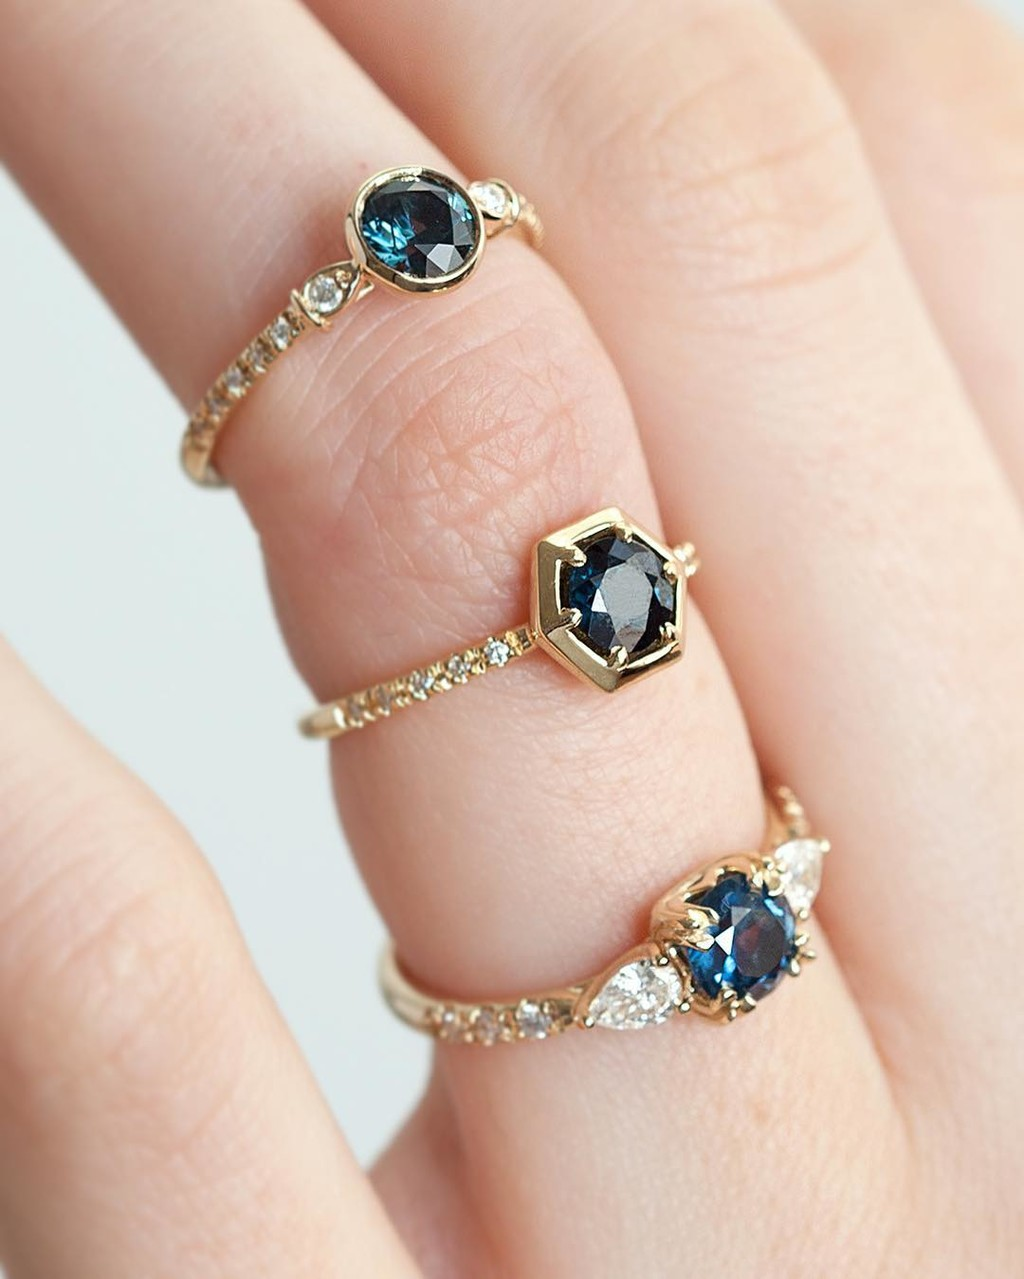 Getting past my Monday blues with New Ethically Sourced Sapphires!! 💙🔵💫 Set in beautiful one of kind rings made from recycled